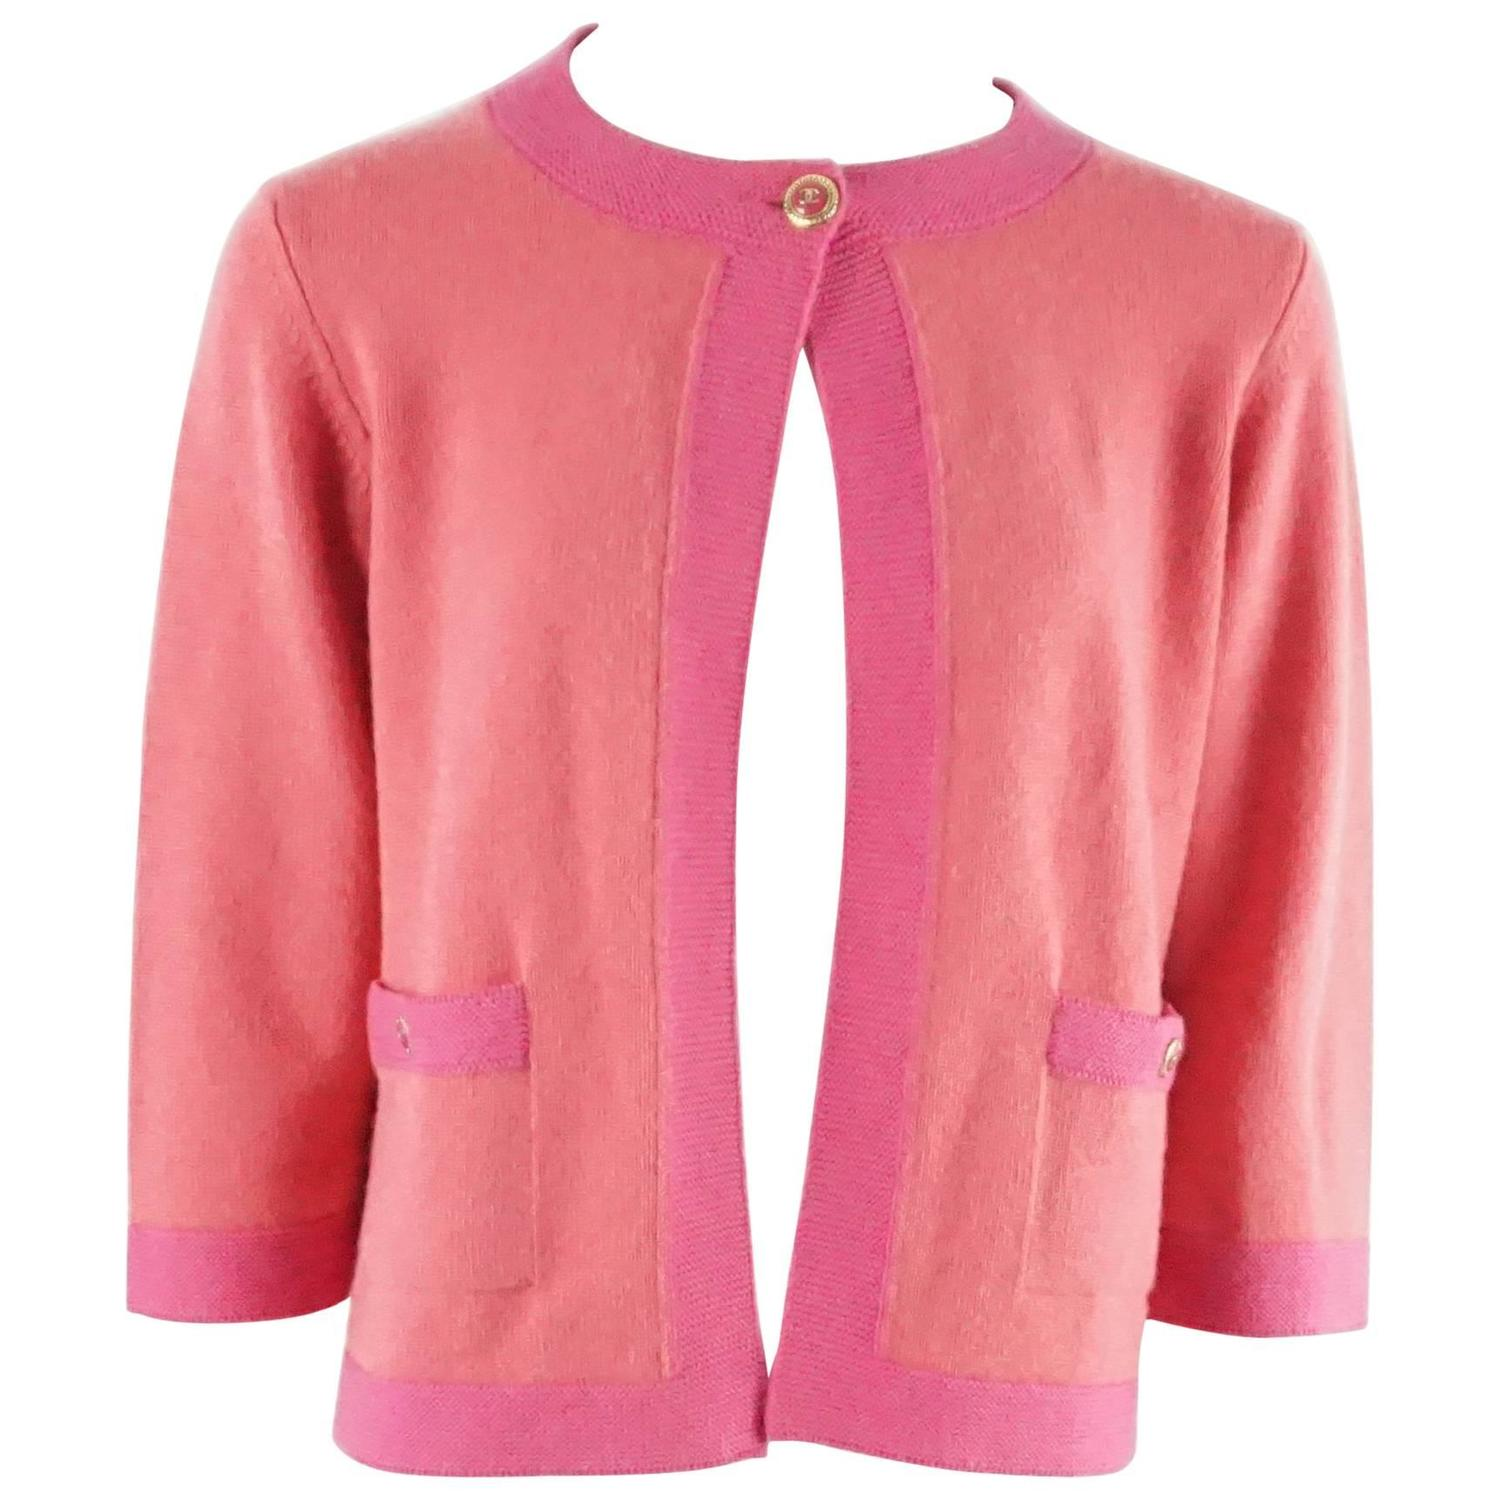 Chanel Fuchsia and Black Cashmere Sweater Two Piece Set Size 46 at ...